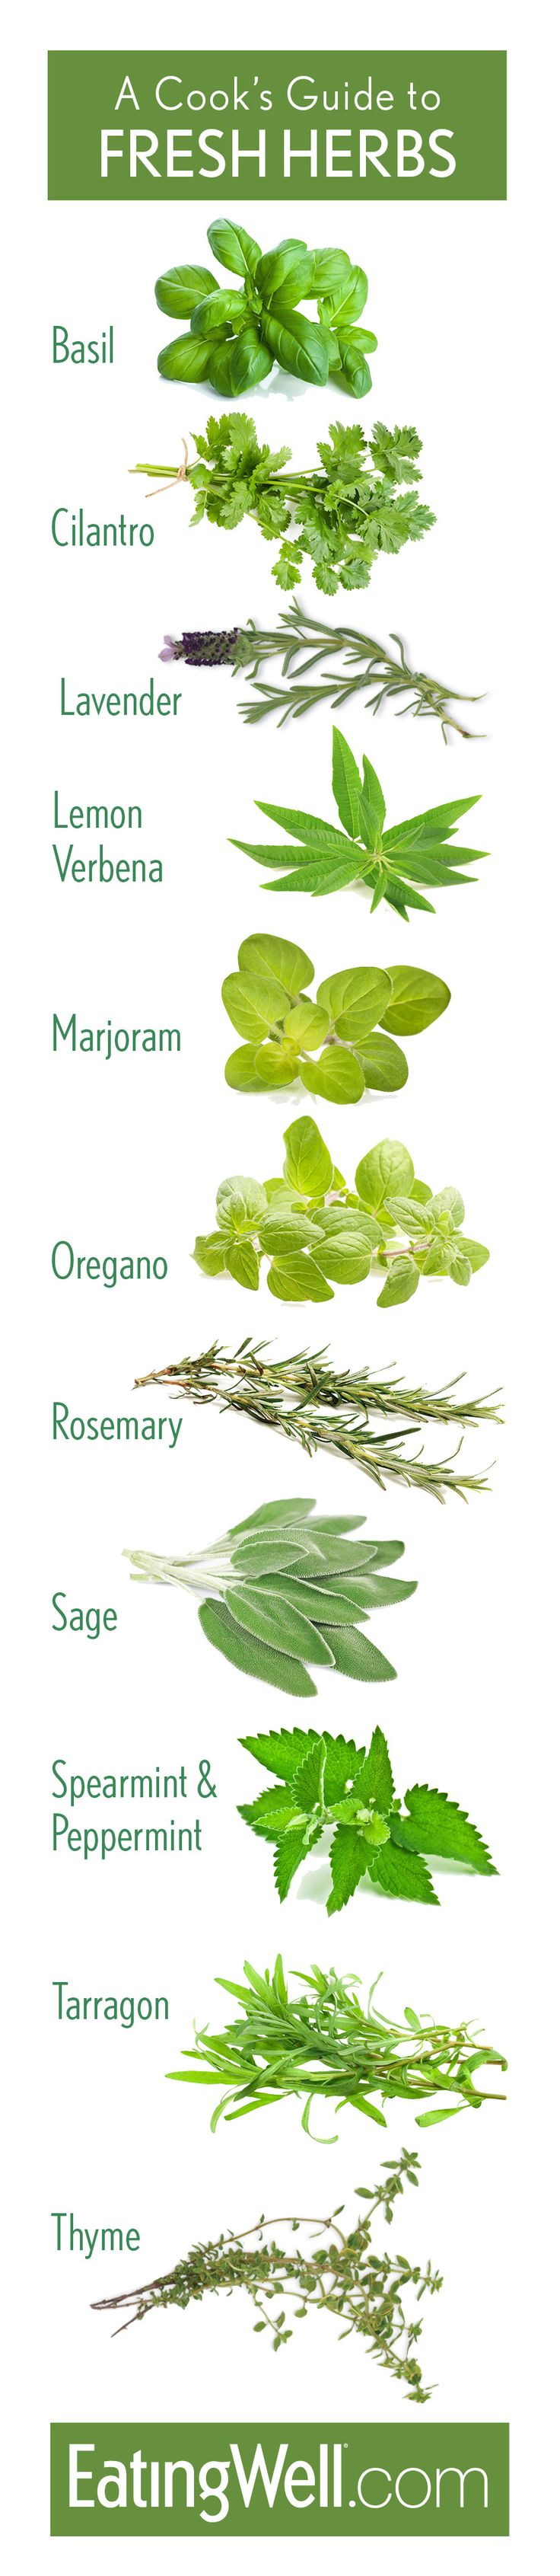 Cooking with herbs is an easy way to infuse a recipe with flavor without increasing calories or fat. Here are out favorites plus ways to use them.